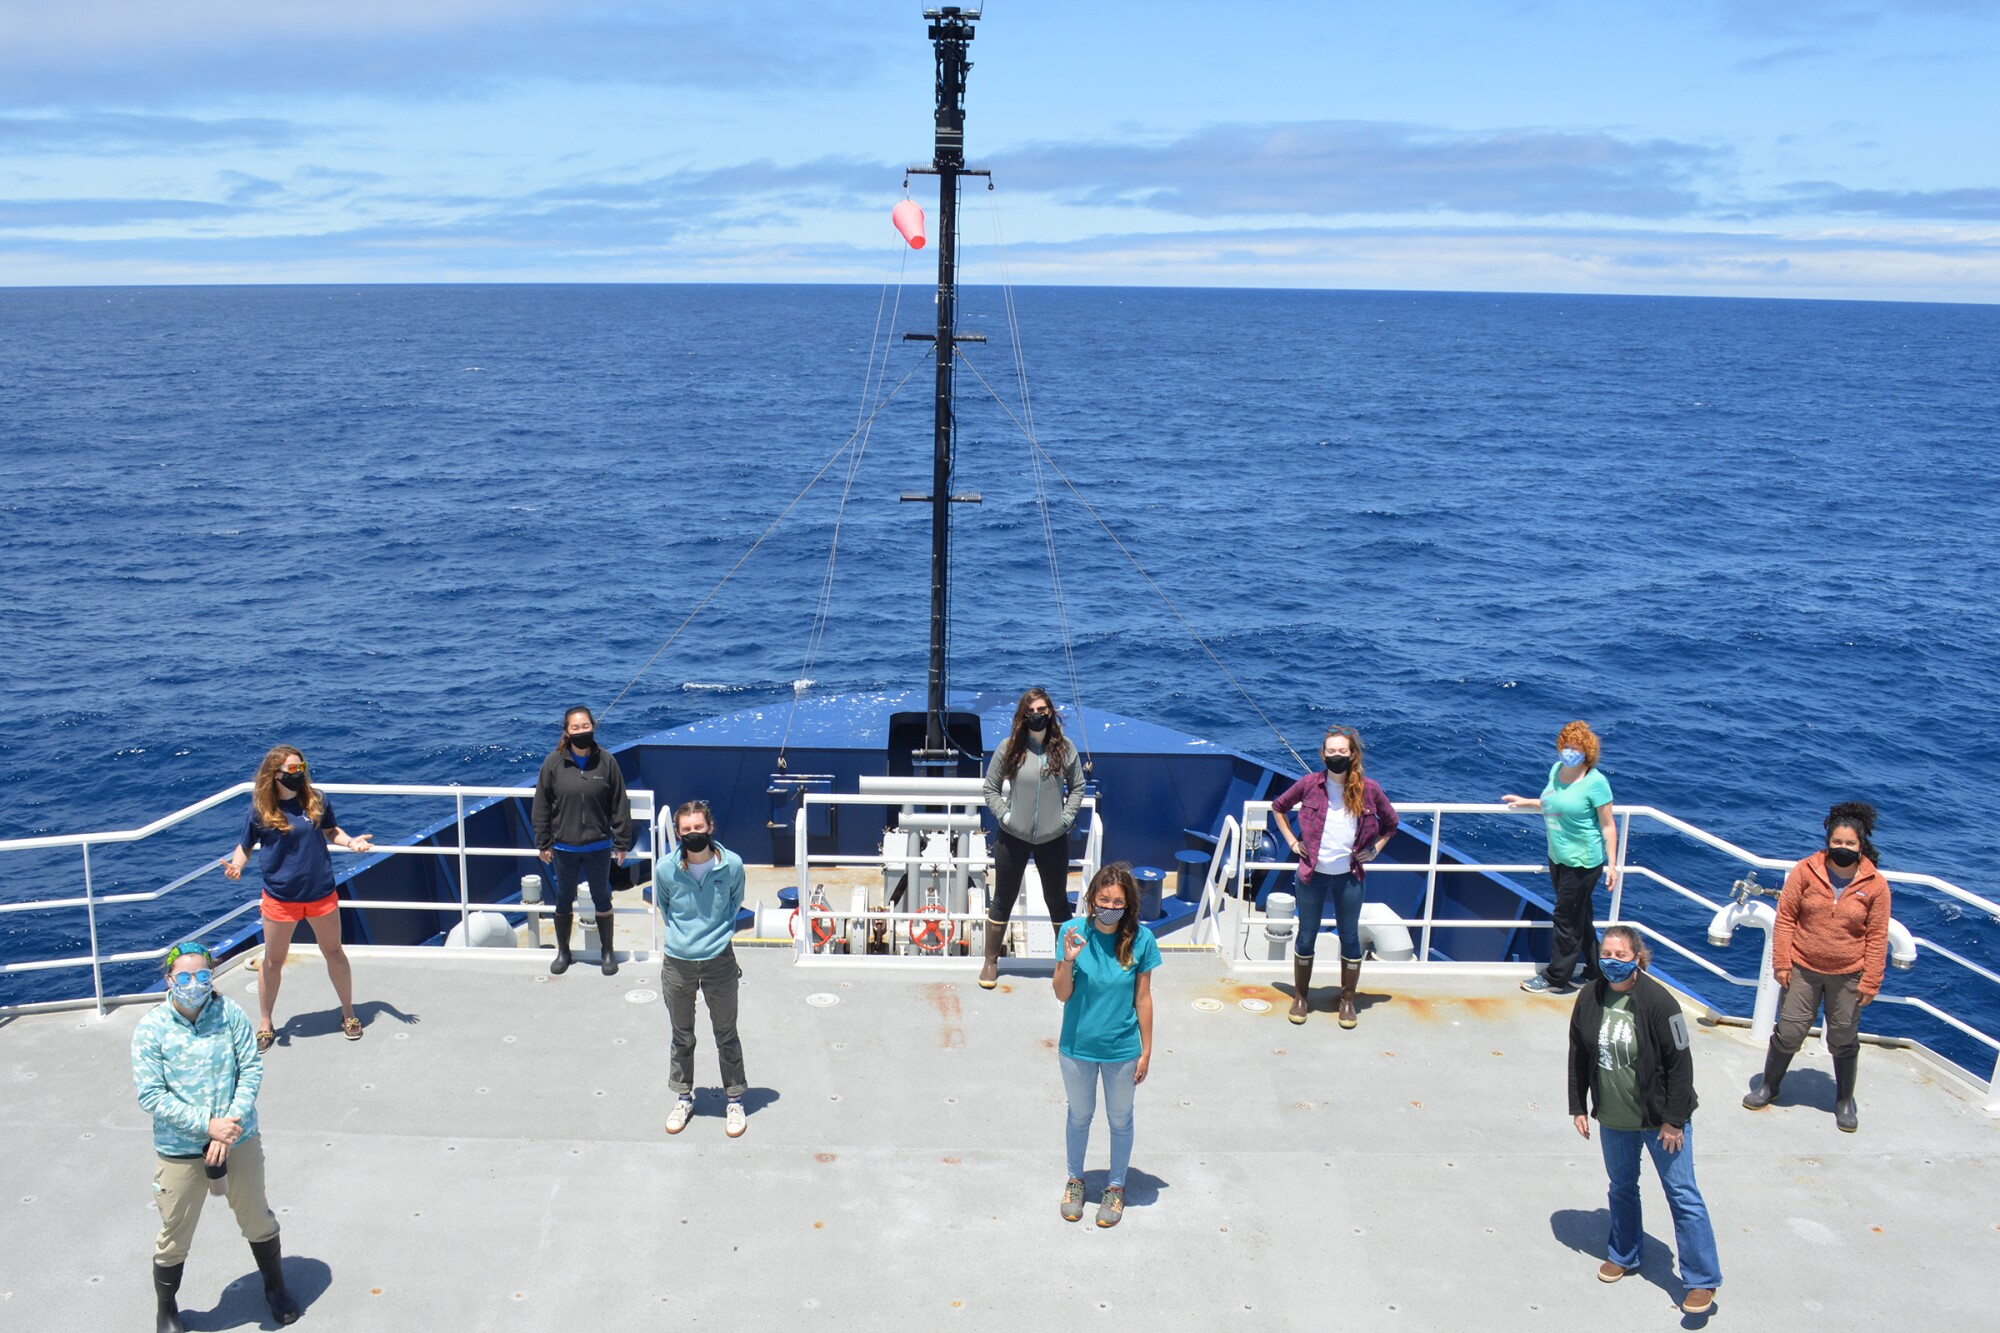 Members of the all-female CalCOFI research team aboard their naval research vessel.